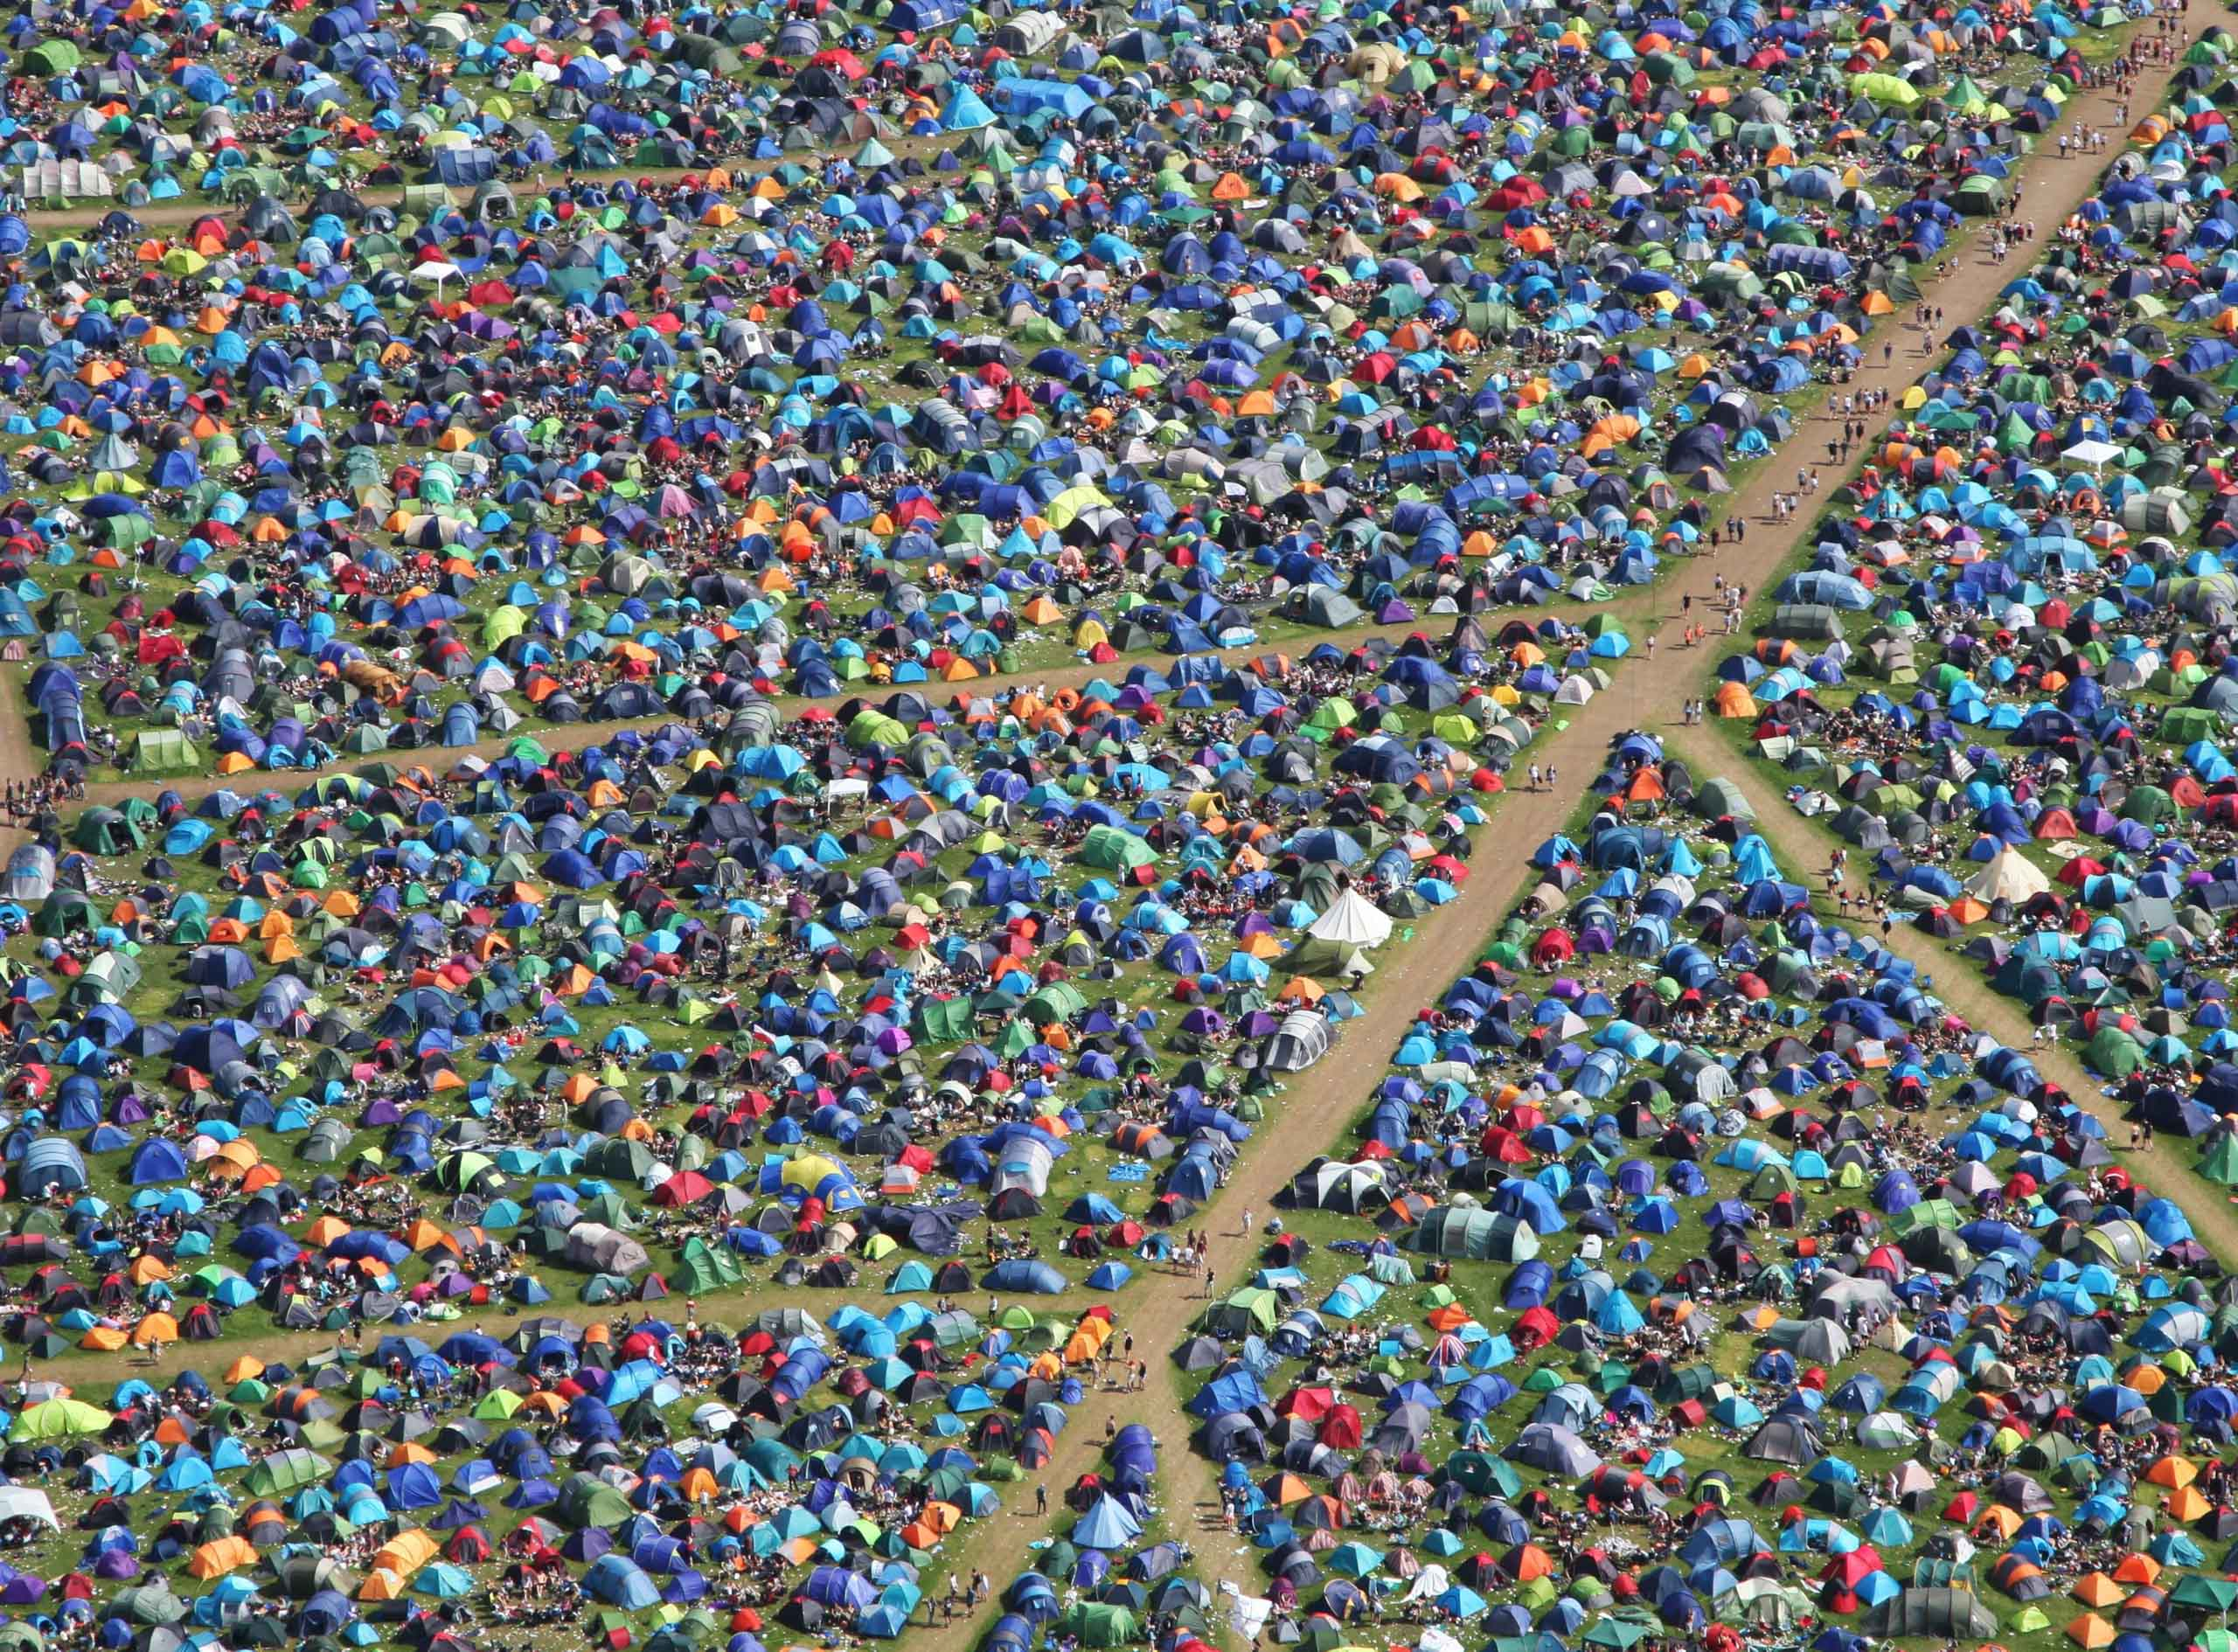 Aerial view of rows of tents. Photo by John Such on Unsplash